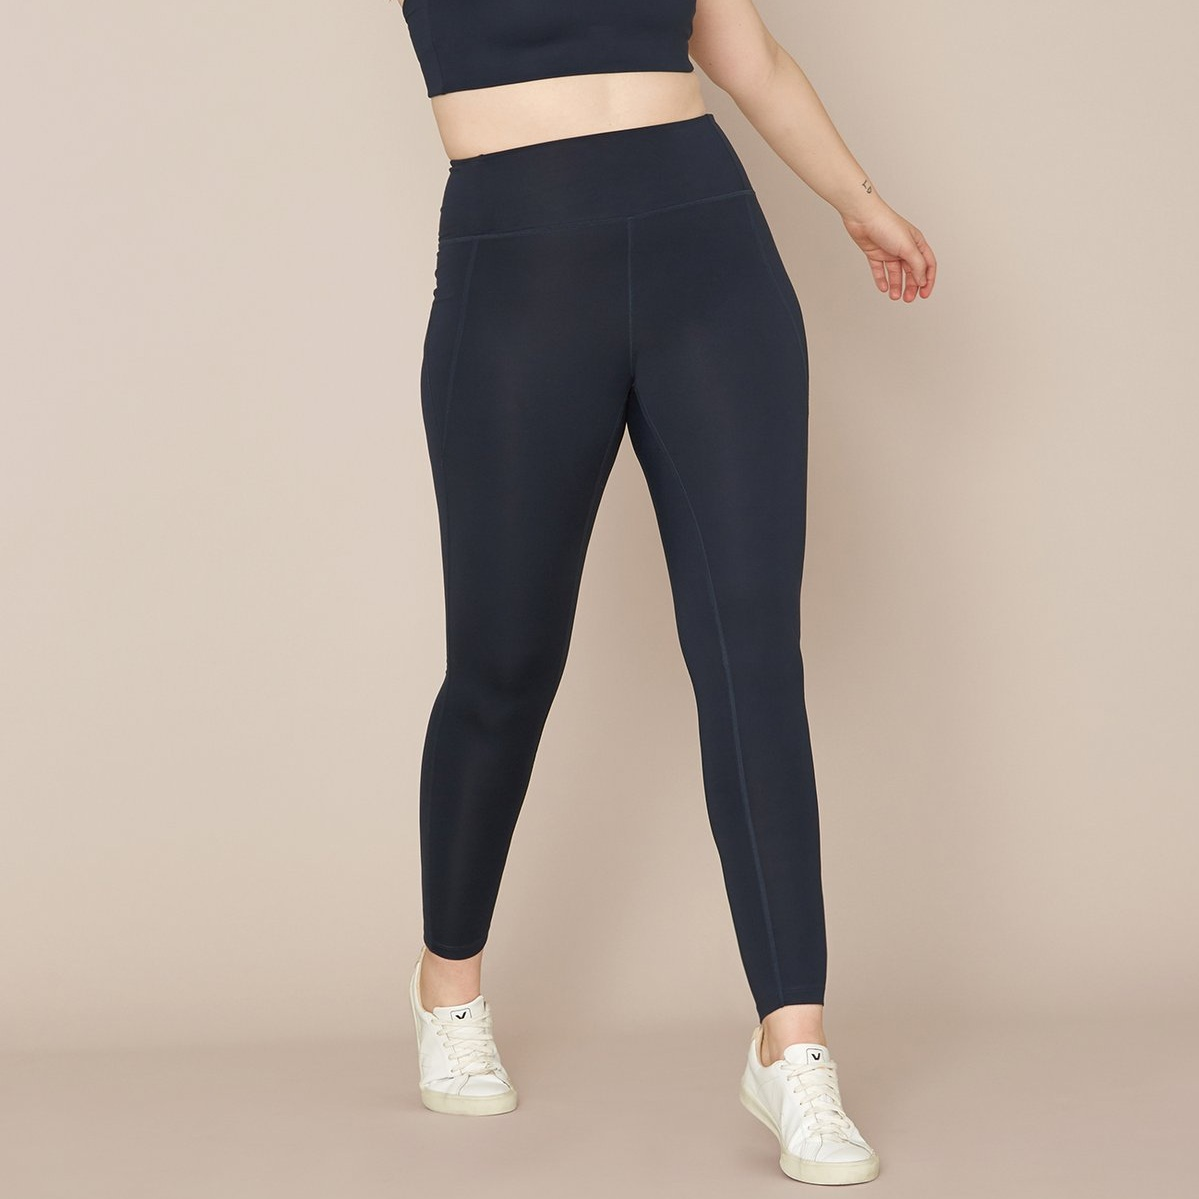 Girlfriend Collective Compressive Mid Rise Leggings